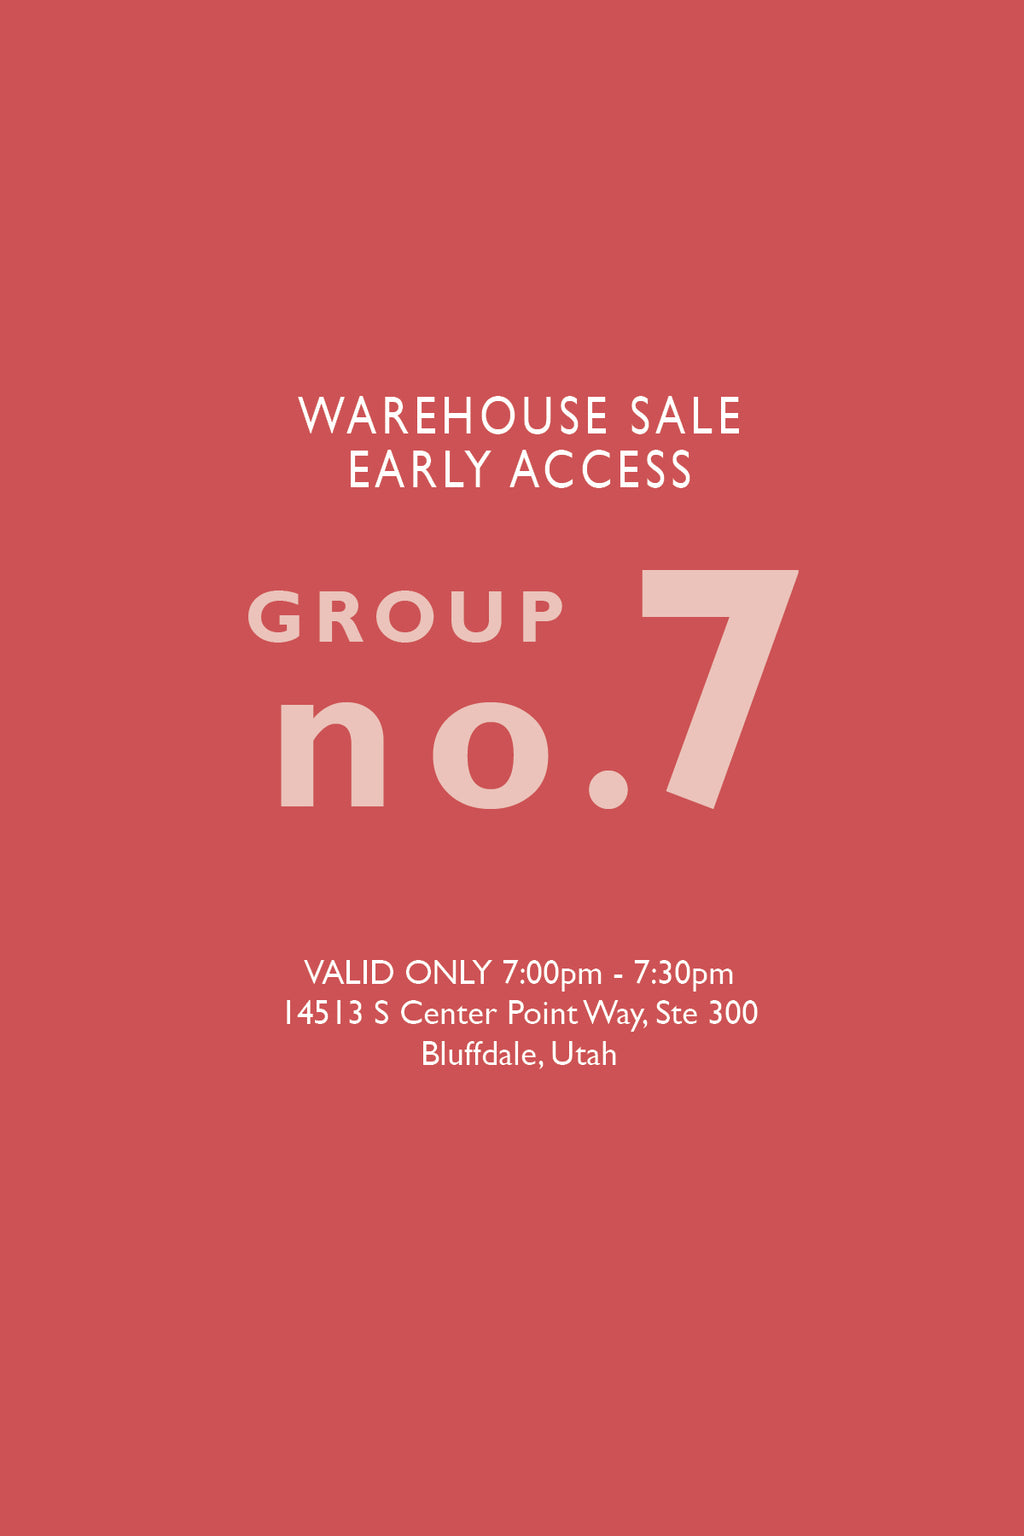 Warehouse Sale EARLY ACCESS: Group No. 7 | 7:00-7:30pm